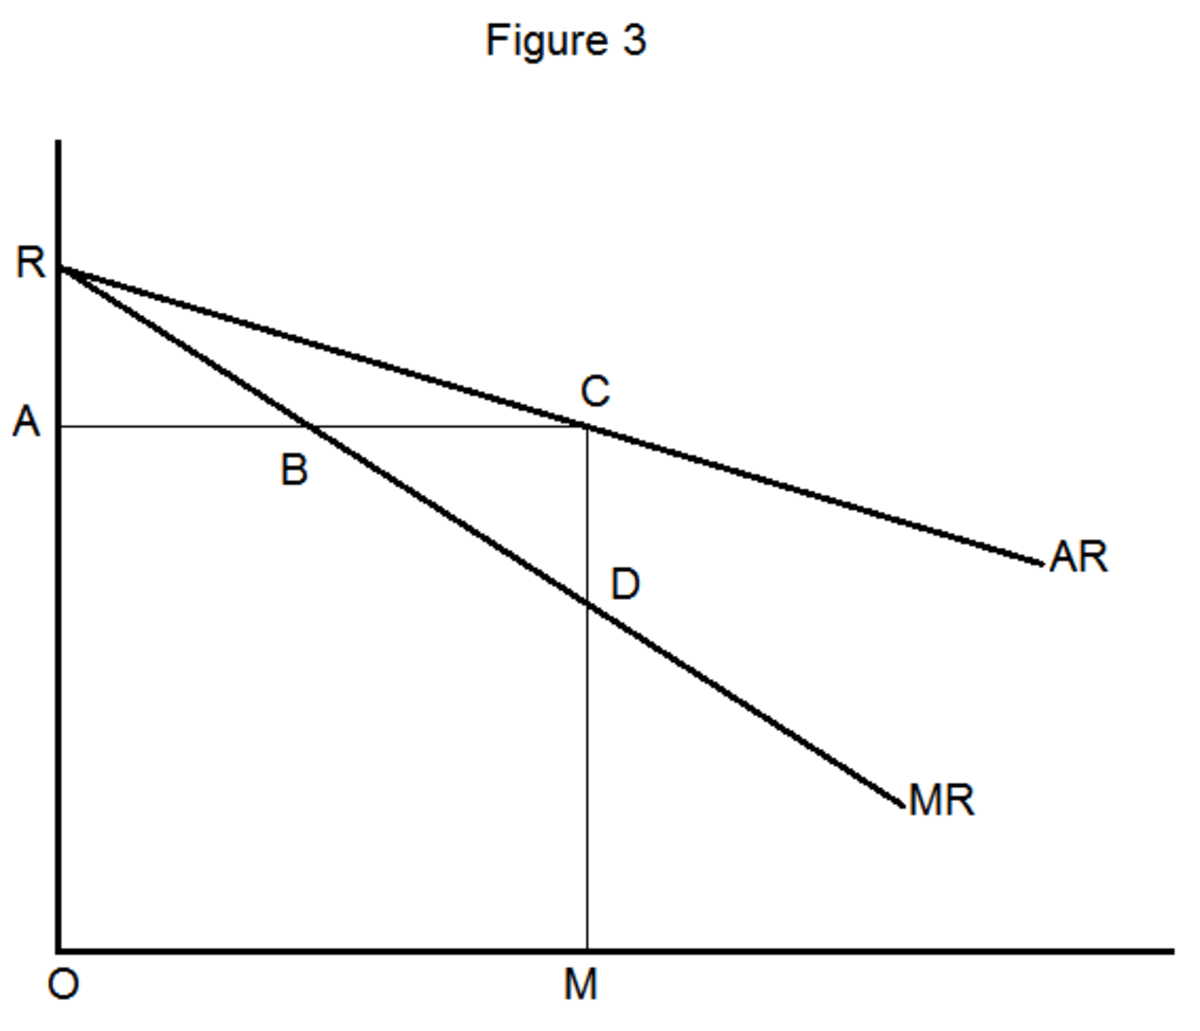 Relationship between Average and Marginal Revenue Curves Owlcation